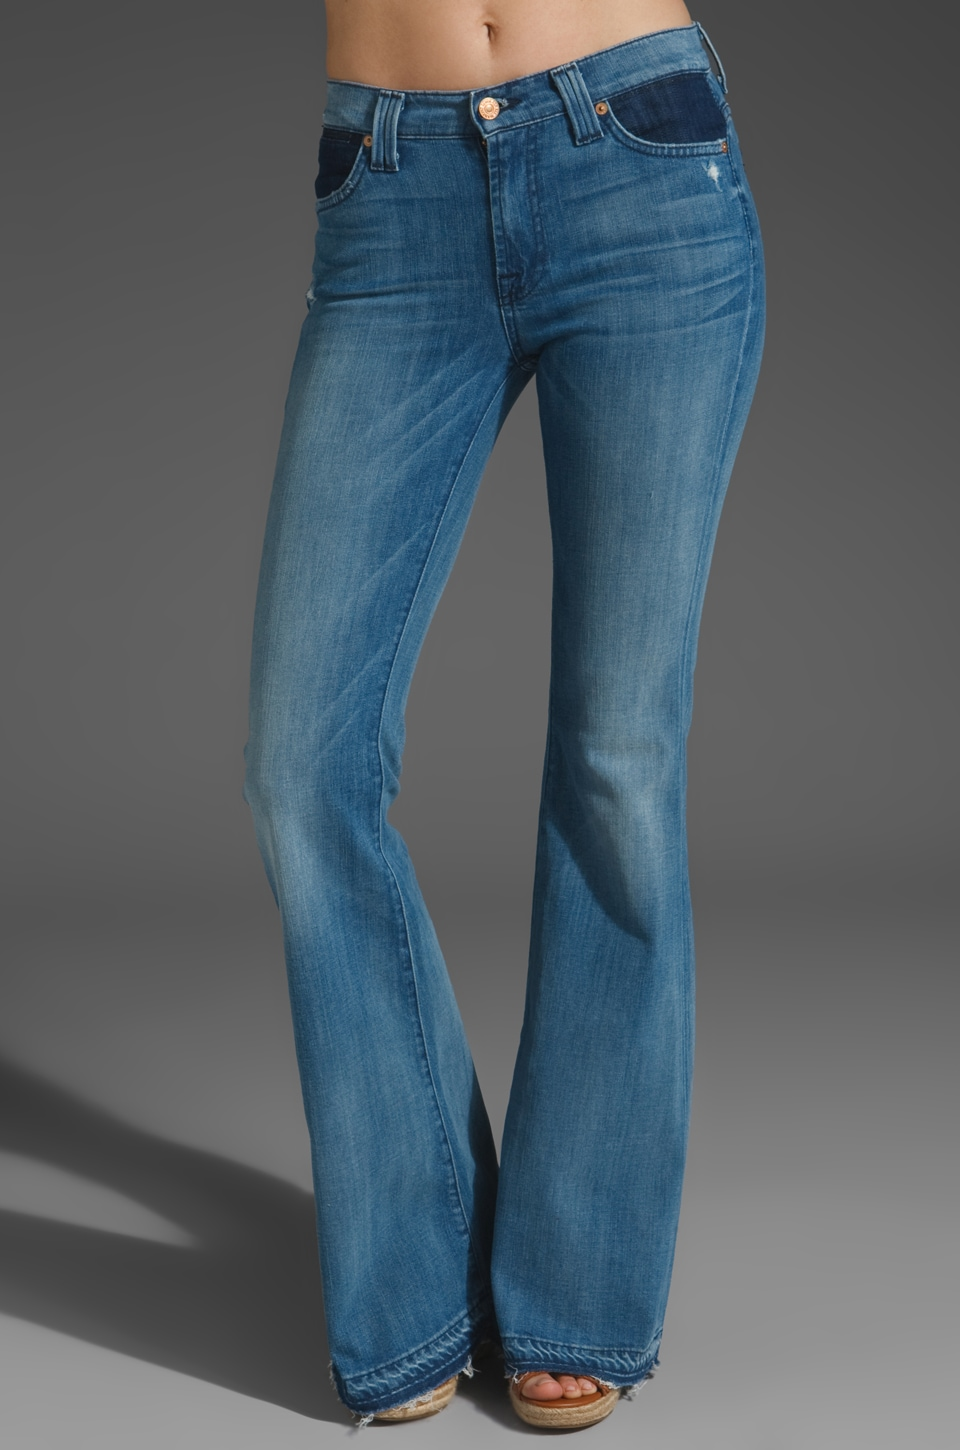 7 For All Mankind Colorblock Flare in Contrast Block